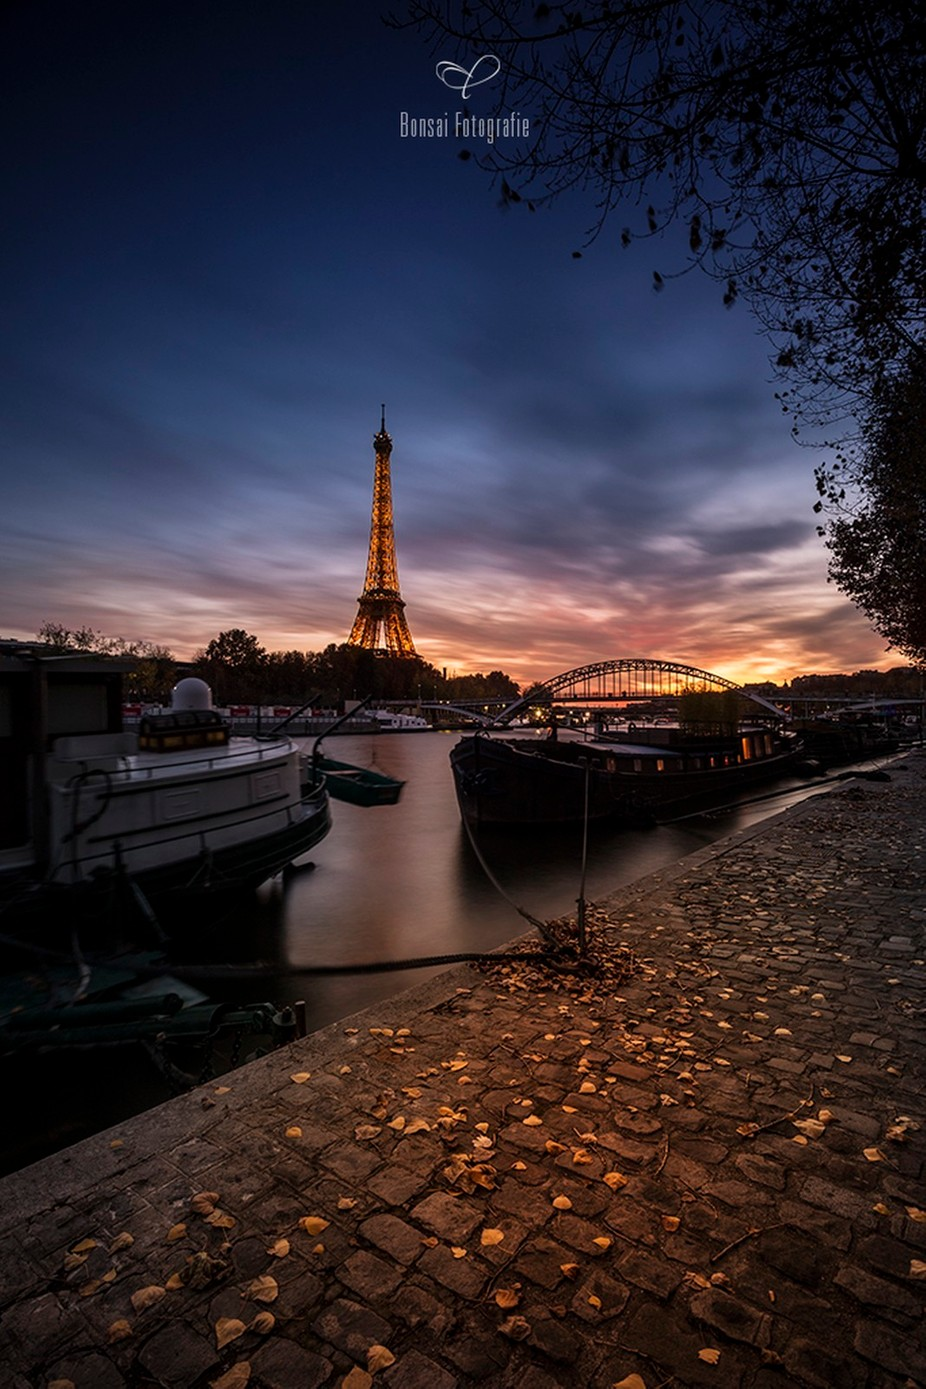 Paris à l'automne by BonsaiFotografie - Paris Photo Contest